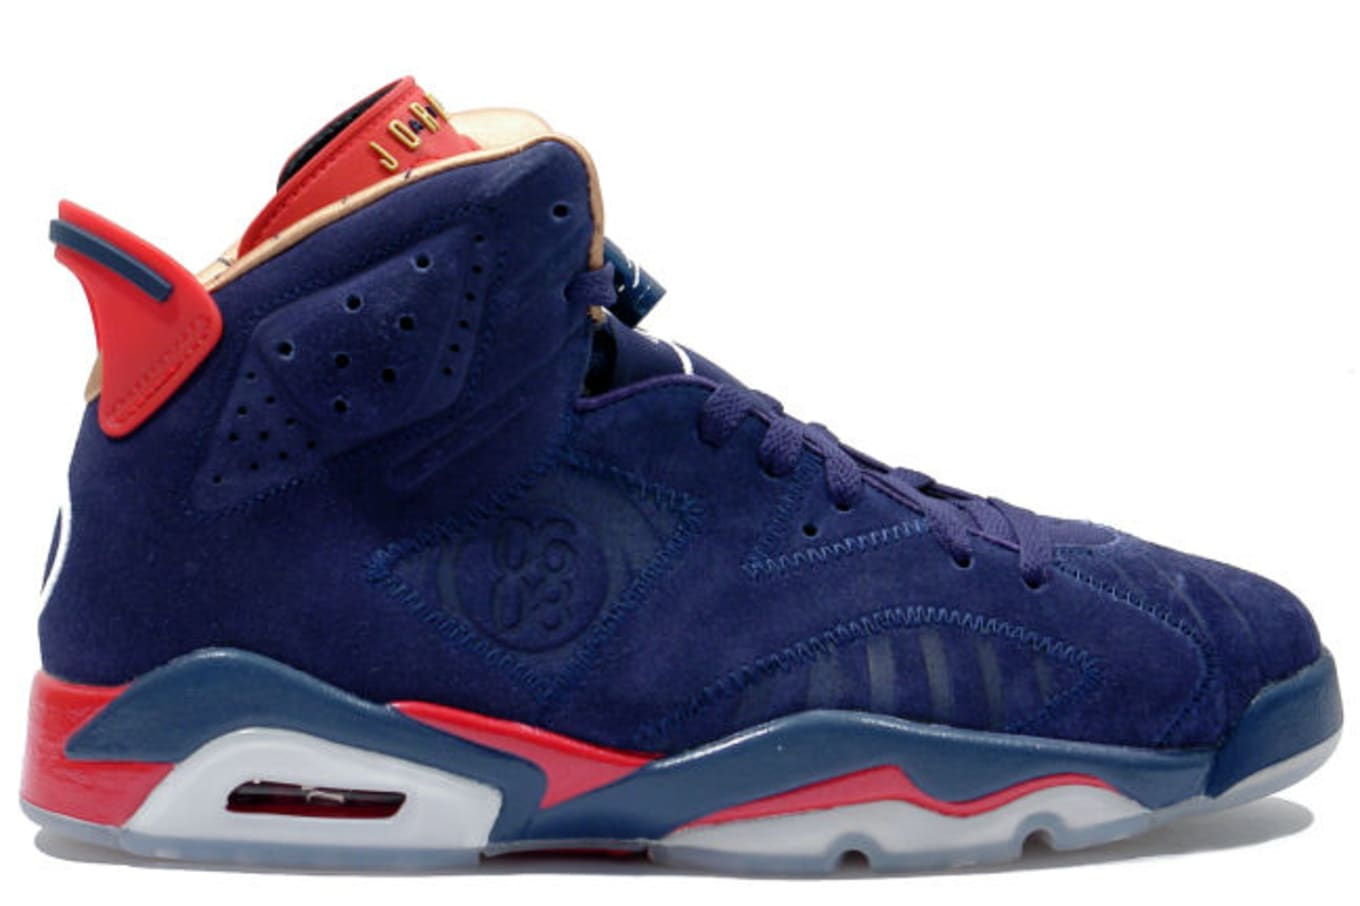 3914fa135d0 New Details on the 2018 Nike Doernbecher Collection. A possible retro of  2009 s Air Jordan 6 design on the way